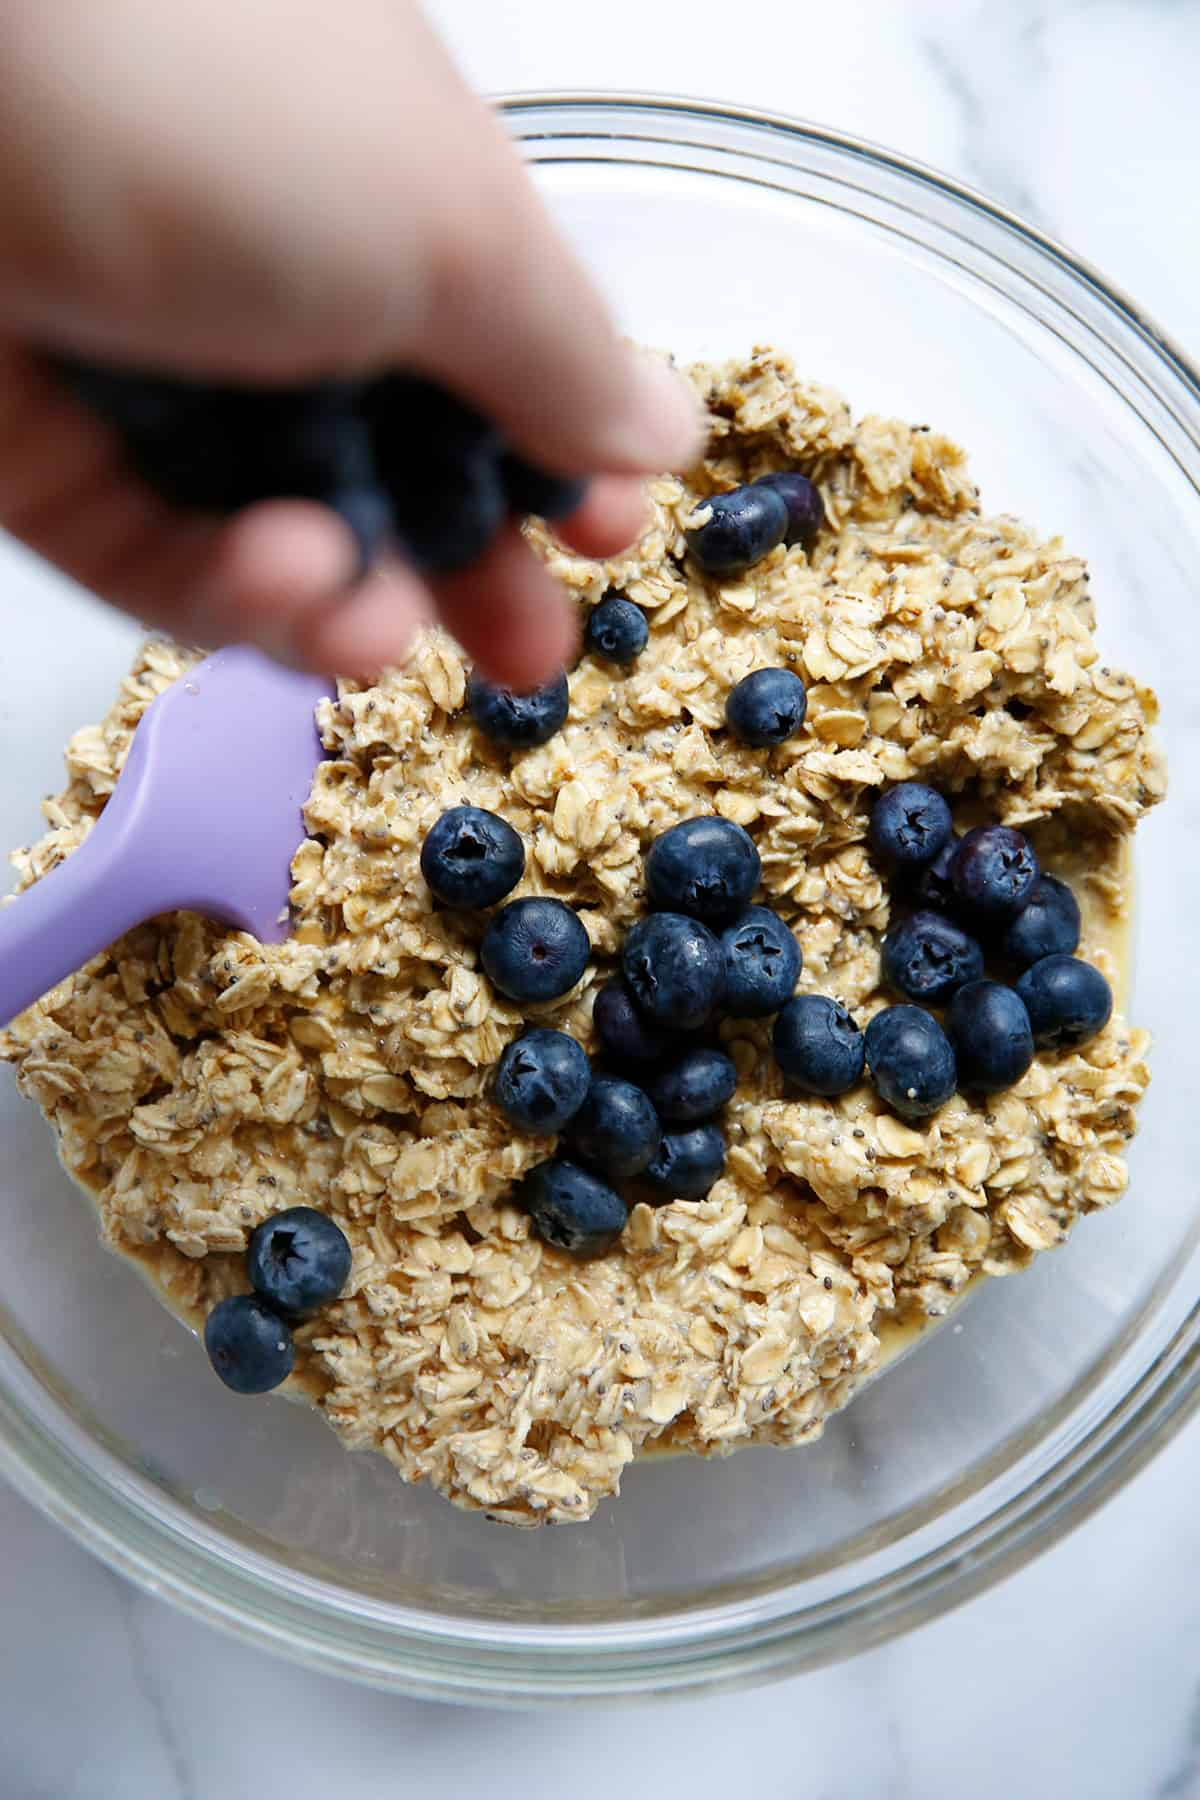 Putting blueberries inside of the bowl with oats